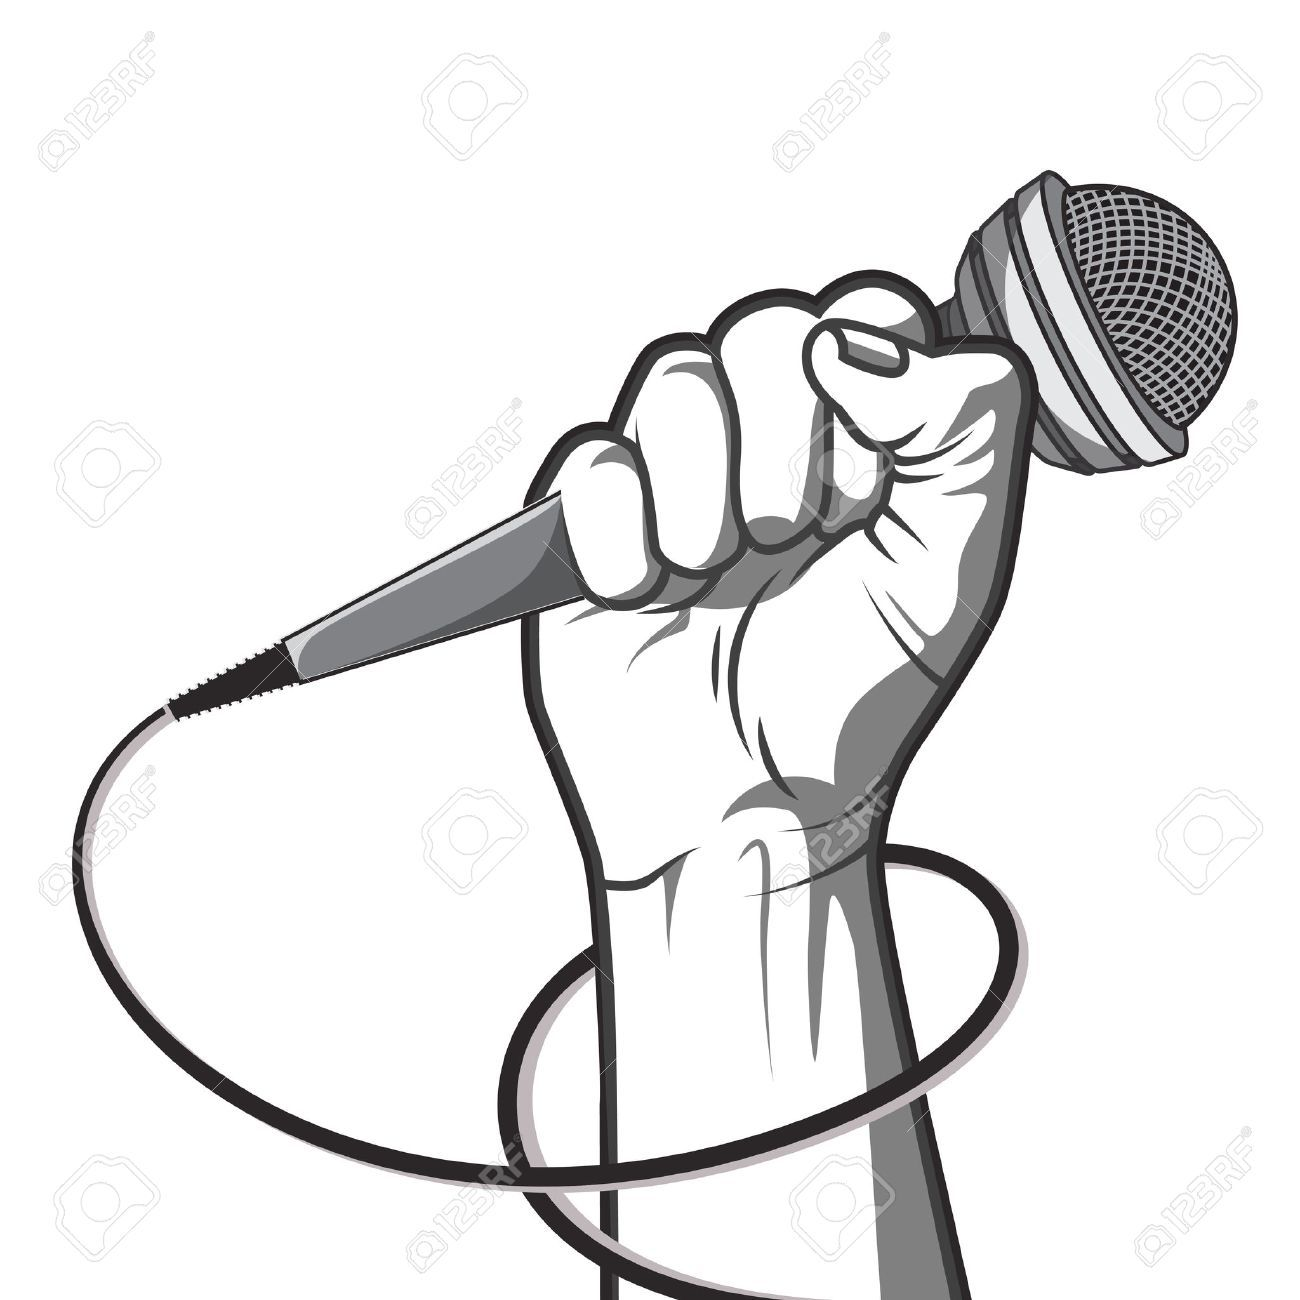 hand holding a microphone in a fist. illustration in black